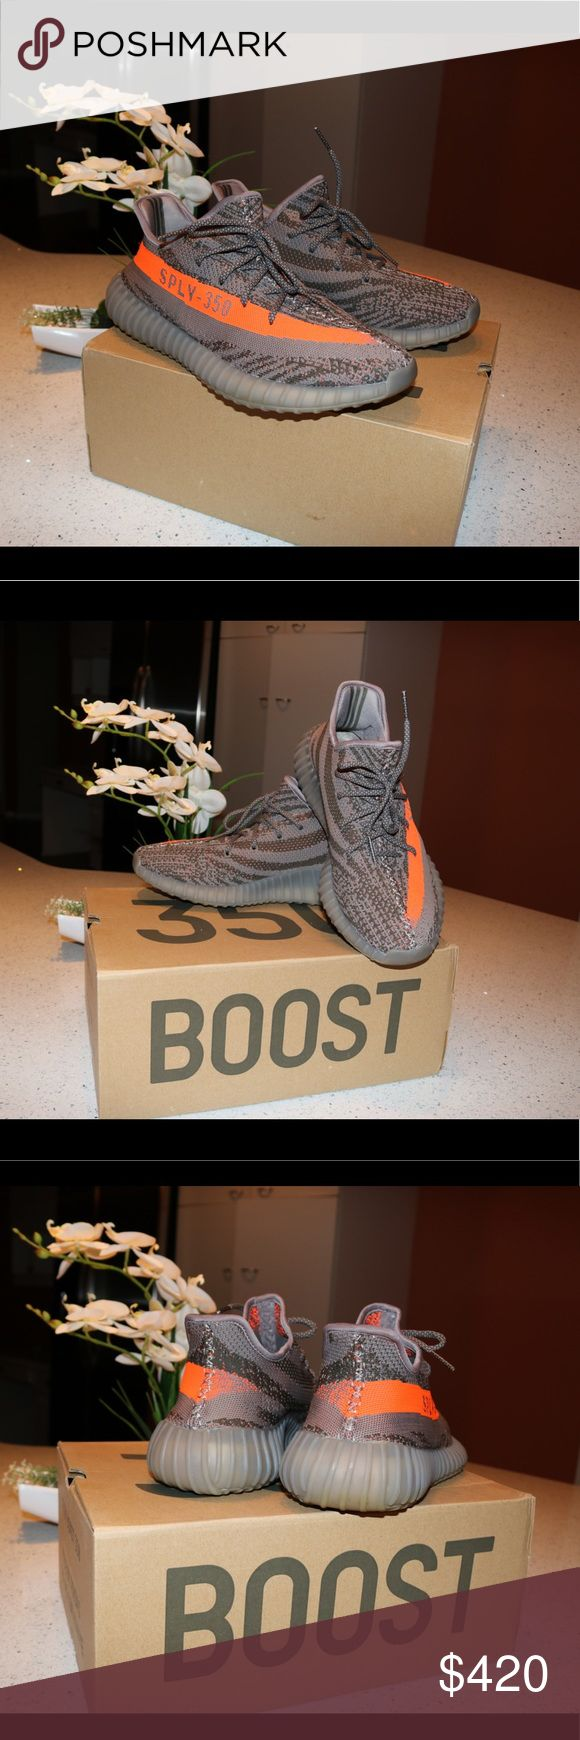 Adidas Yeezy Boost 350 V2 Beluga Adidas Yeezy Boost 350 V2 Beluga's (Comes with box) Only worn a few times!! Which is why the price is low Price could be negotiable Yeezy Shoes Sneakers